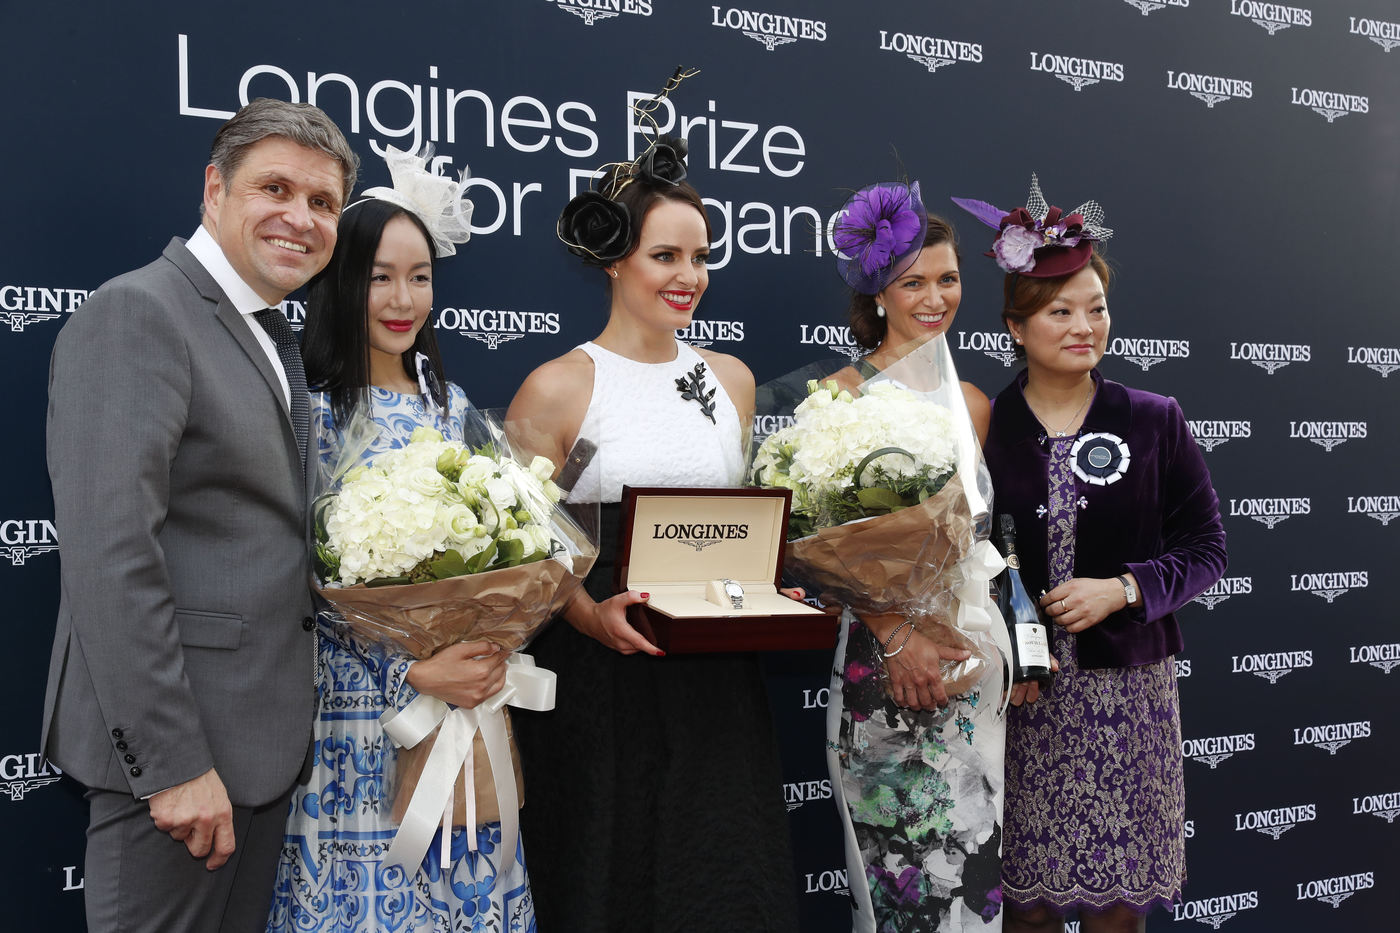 Longines Flat Racing Event: Longines Hong Kong International Races – a spectacular conclusion to a thrilling year of flat racing  14